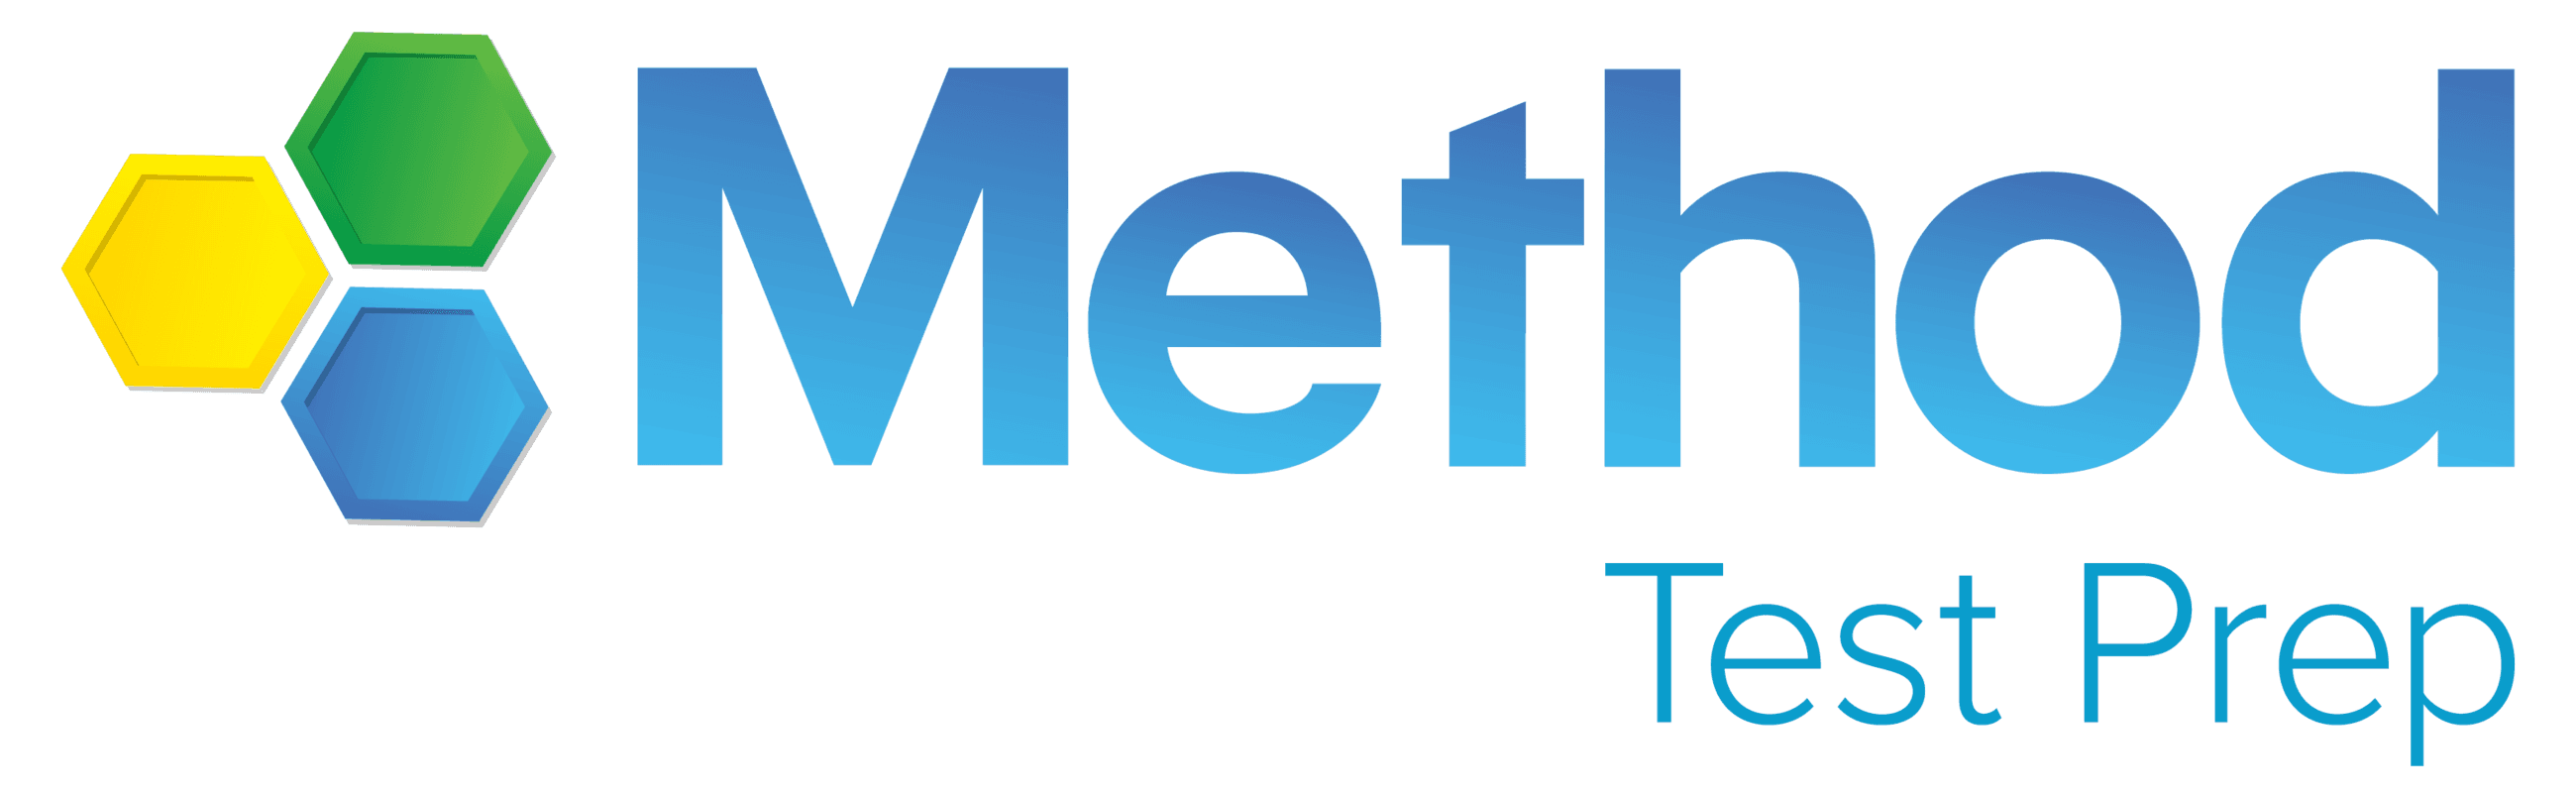 Method Test Prep - Logo